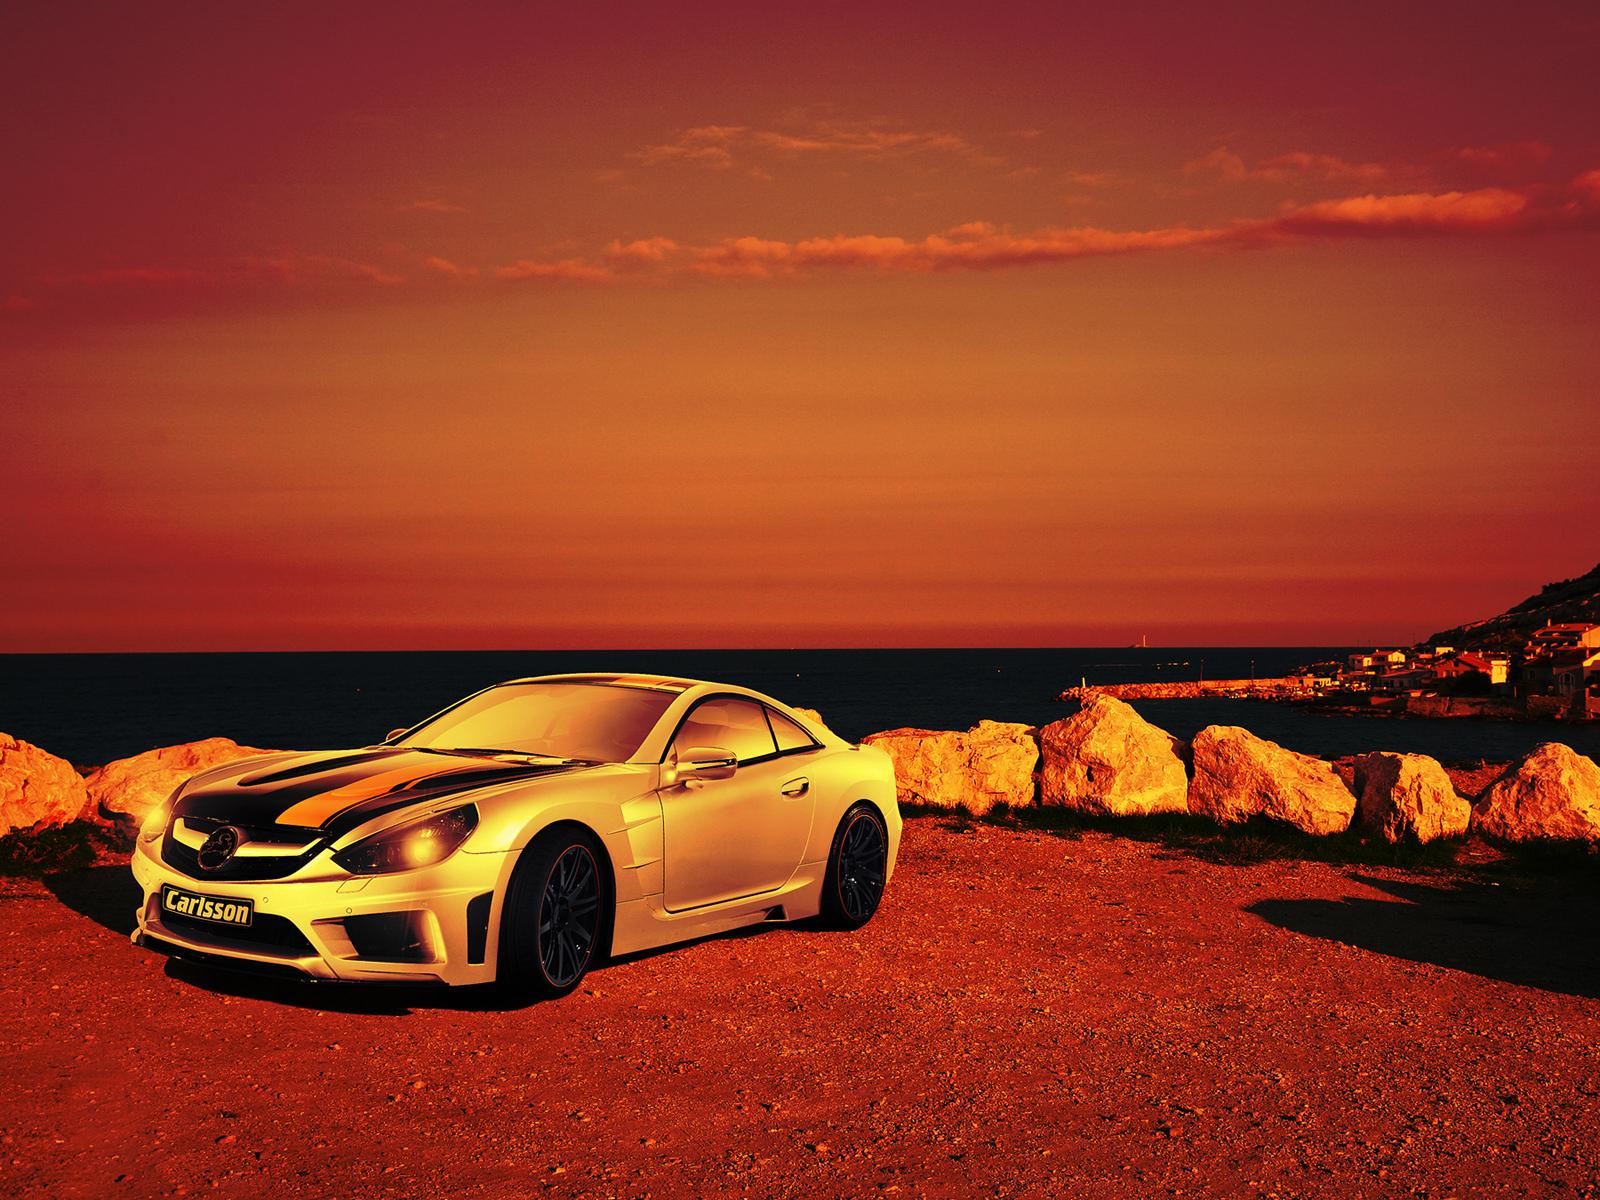 Carlsson C Exotic Wallpapers X